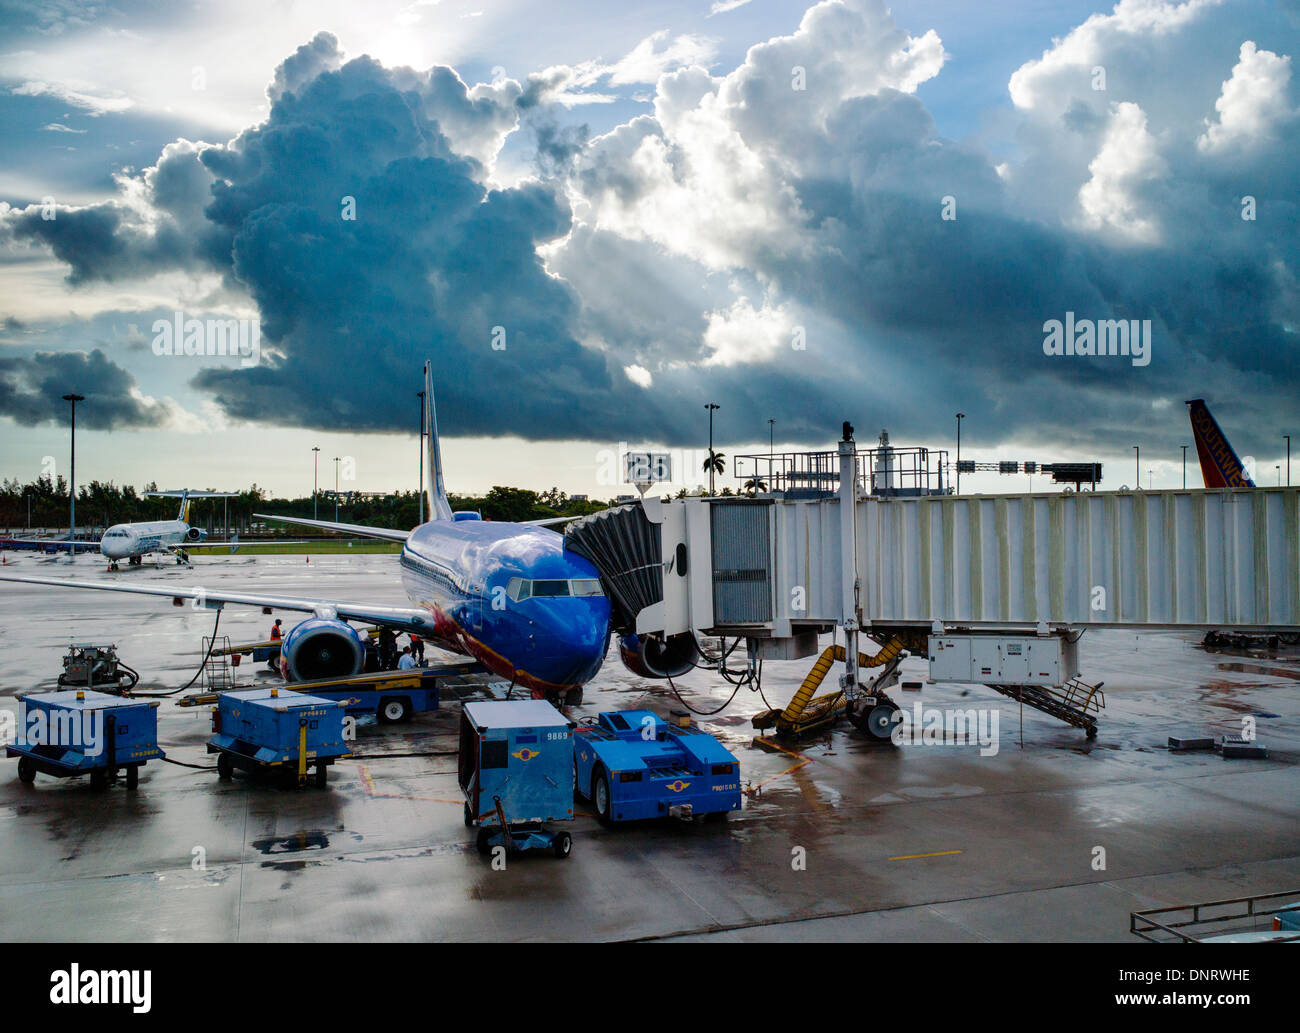 Commercial airliner viewed through a gate window, Ft. Lauderdale - Hollywood International Airport - Stock Image